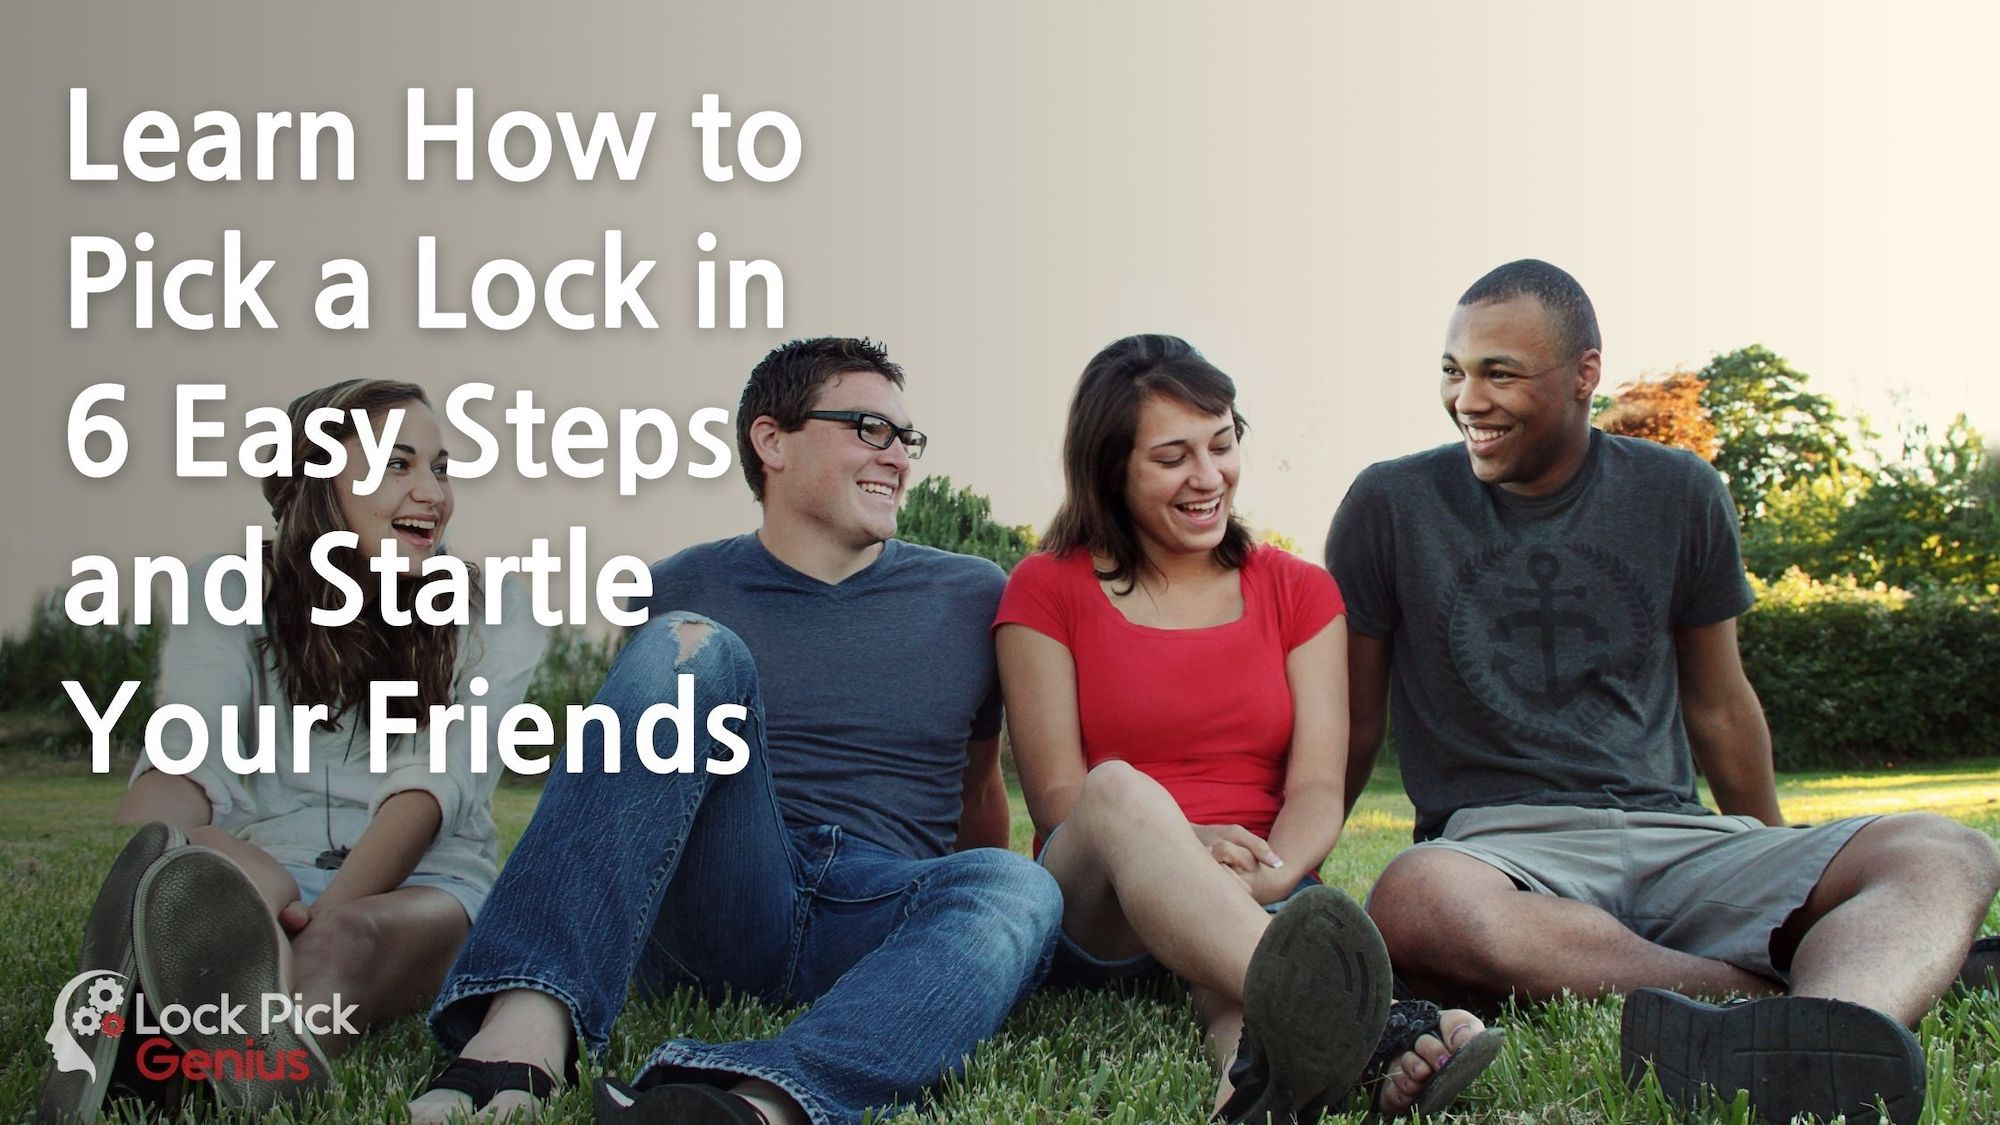 Learn How to Pick a Lock in 6 Easy Steps and Startle Your Friends